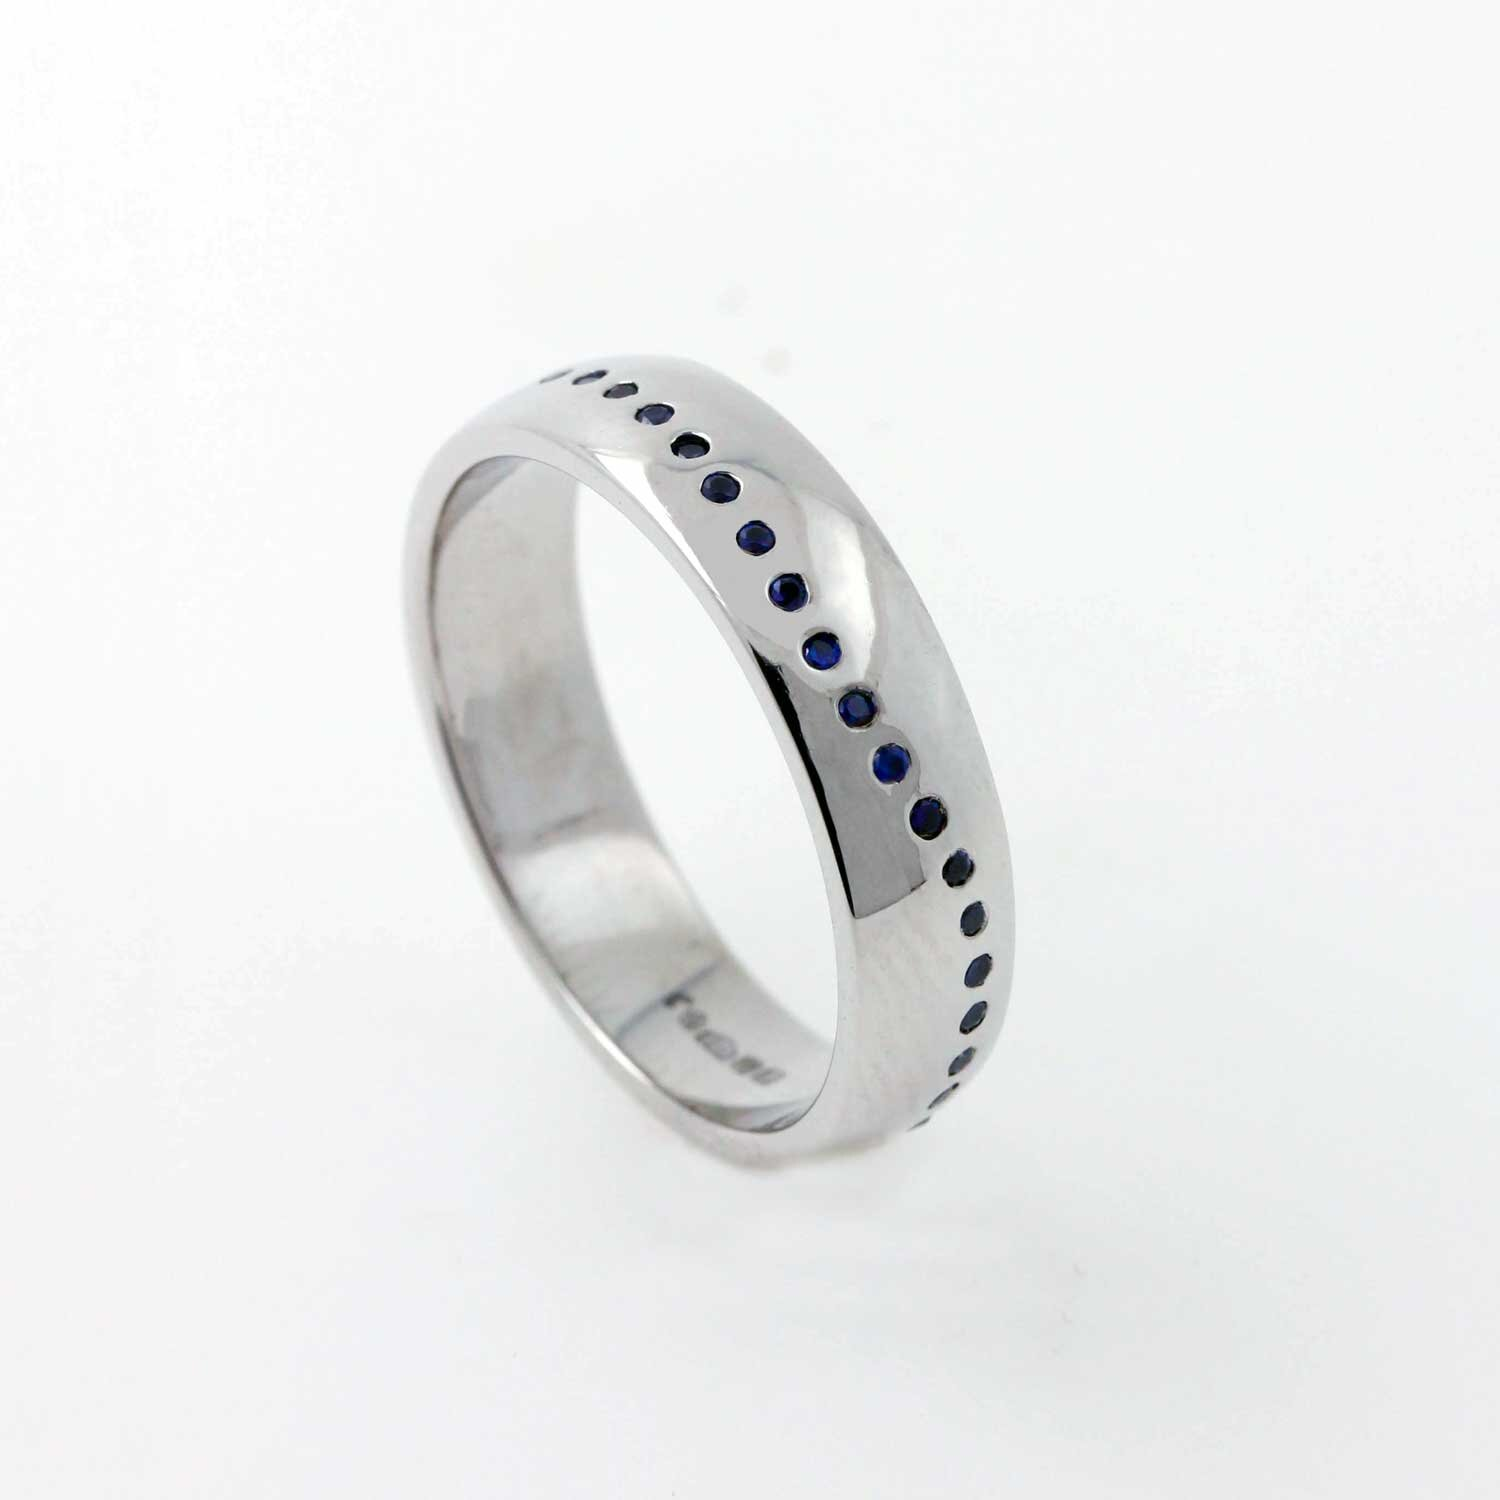 """Baby Blue - Sarah wanted to create a pinky ring for her husband Richard's special birthday to match his watch. I created a platinum oval band, with blue sapphires set in a wave pattern all the way around.""""Rich loves it, thanks so much"""" - Sarah Holden."""